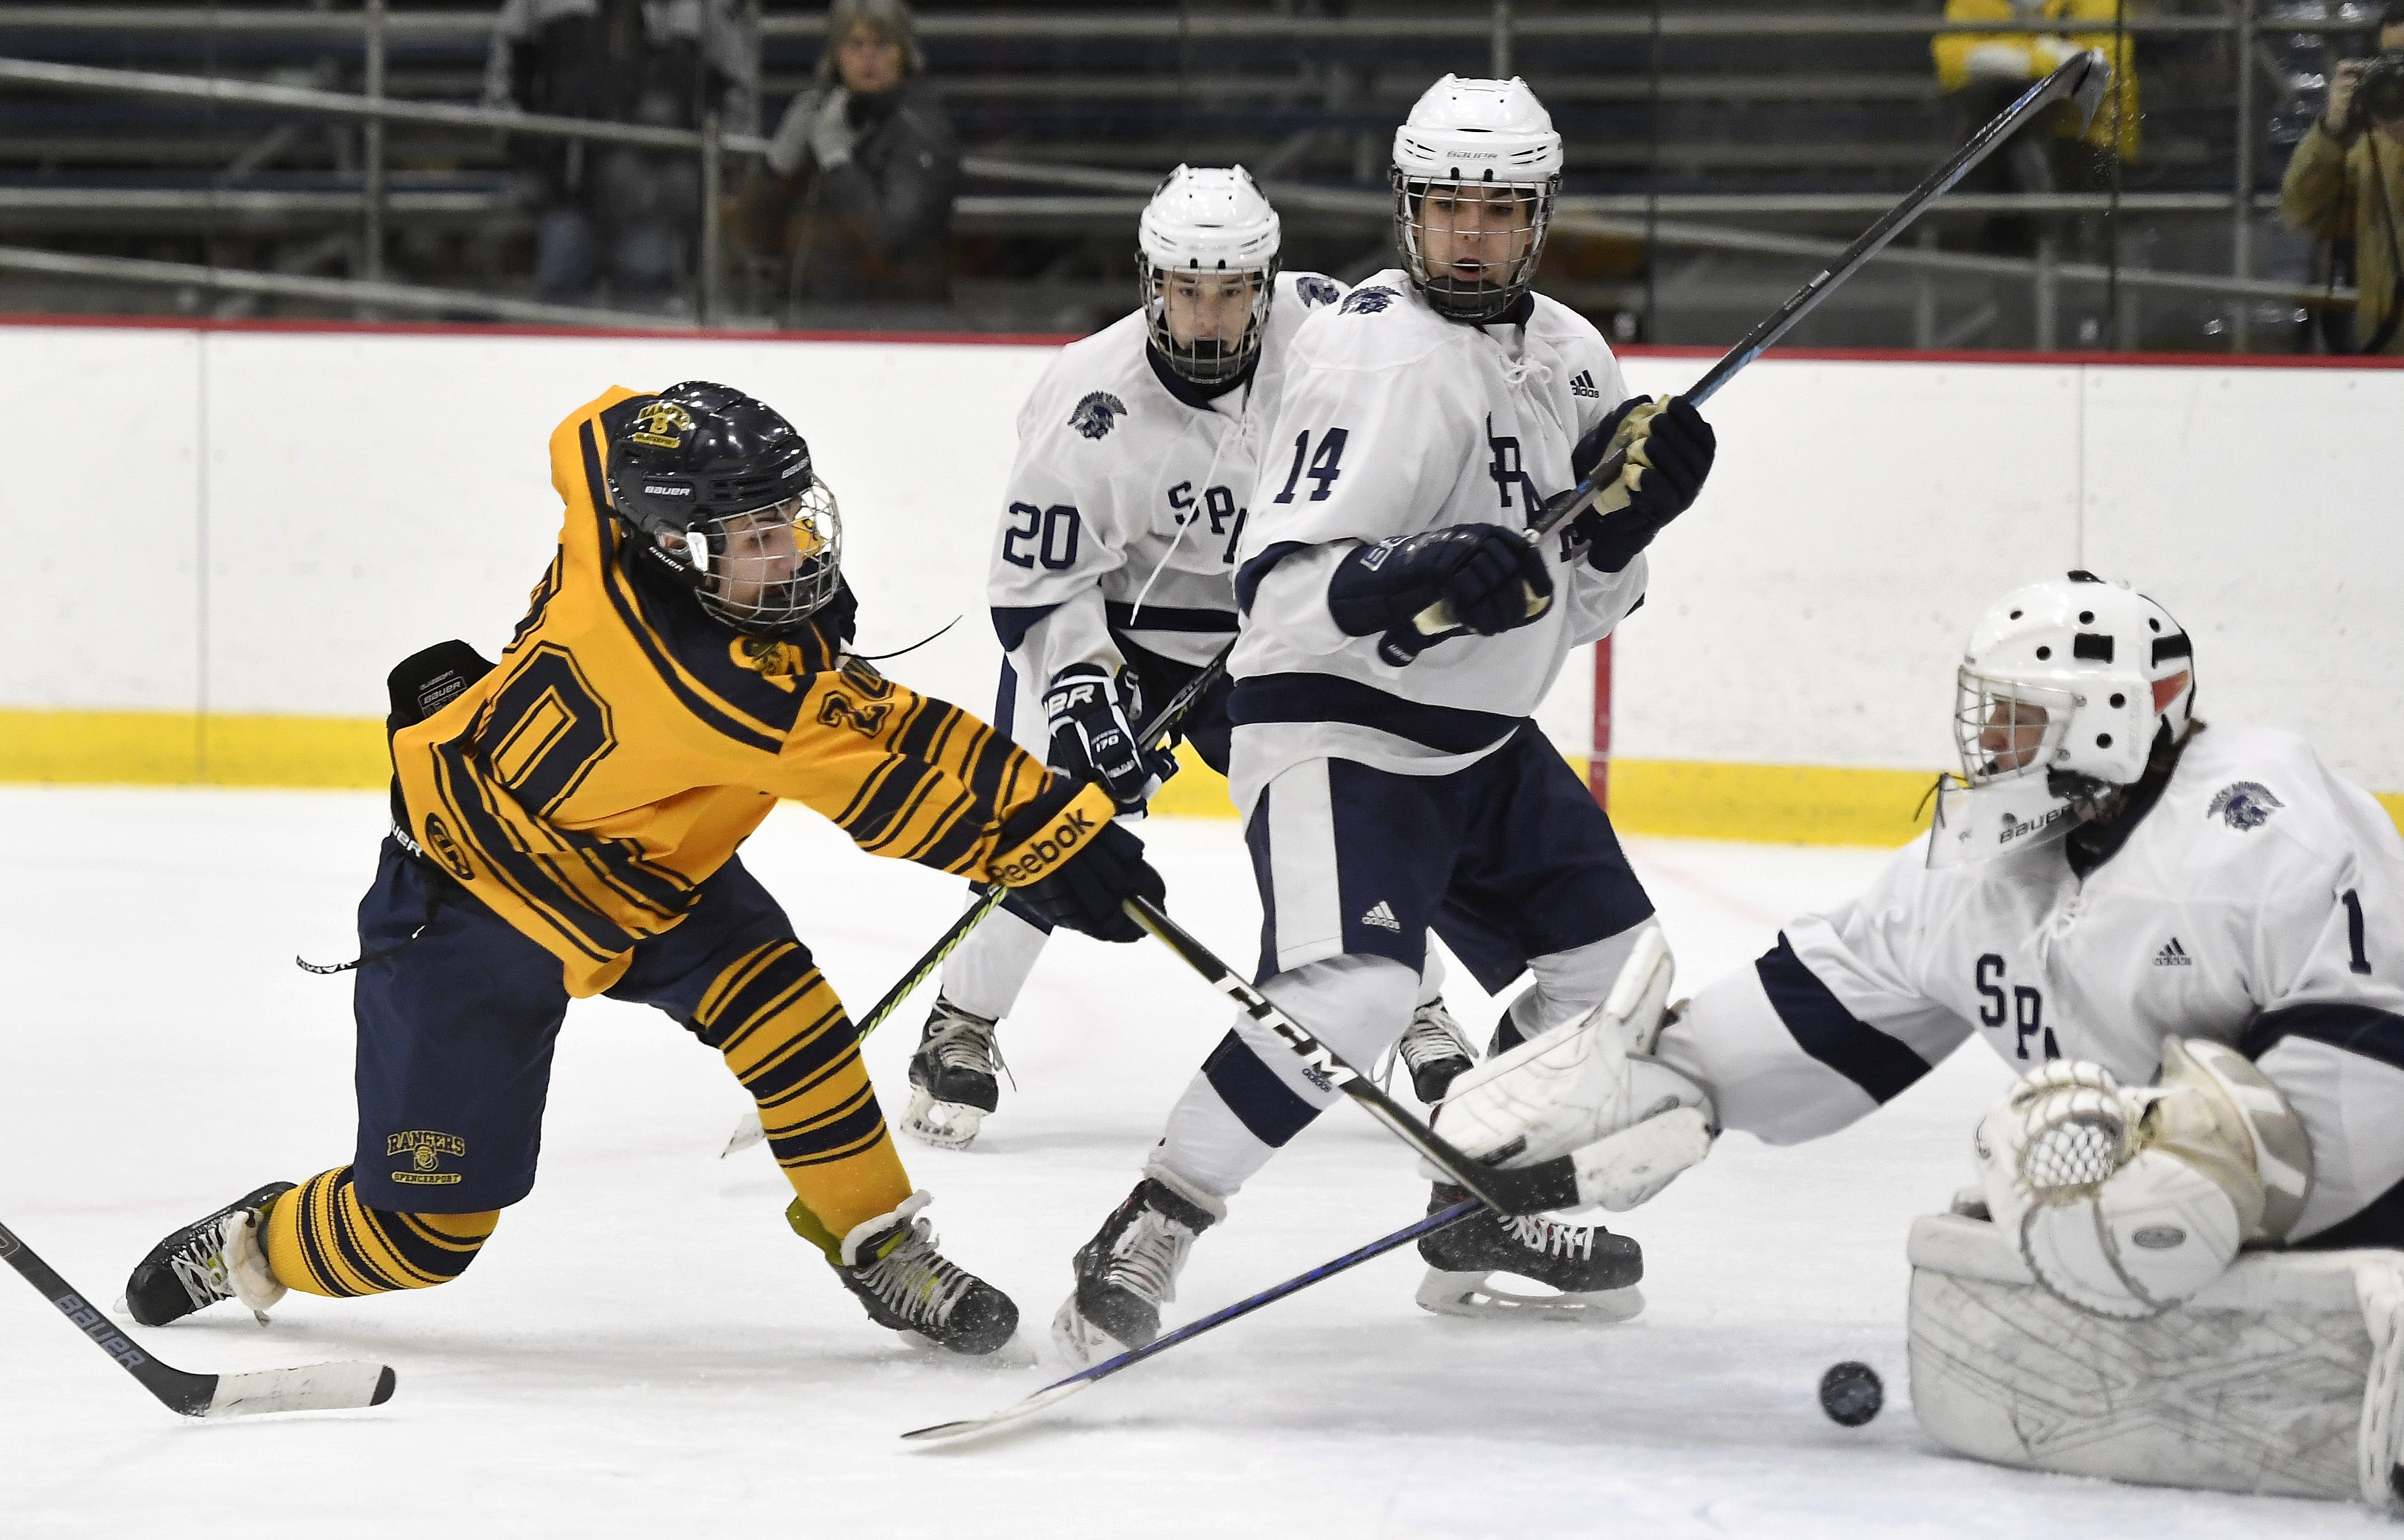 From two wins to division champs, Spencerport hockey enjoys turnaround season